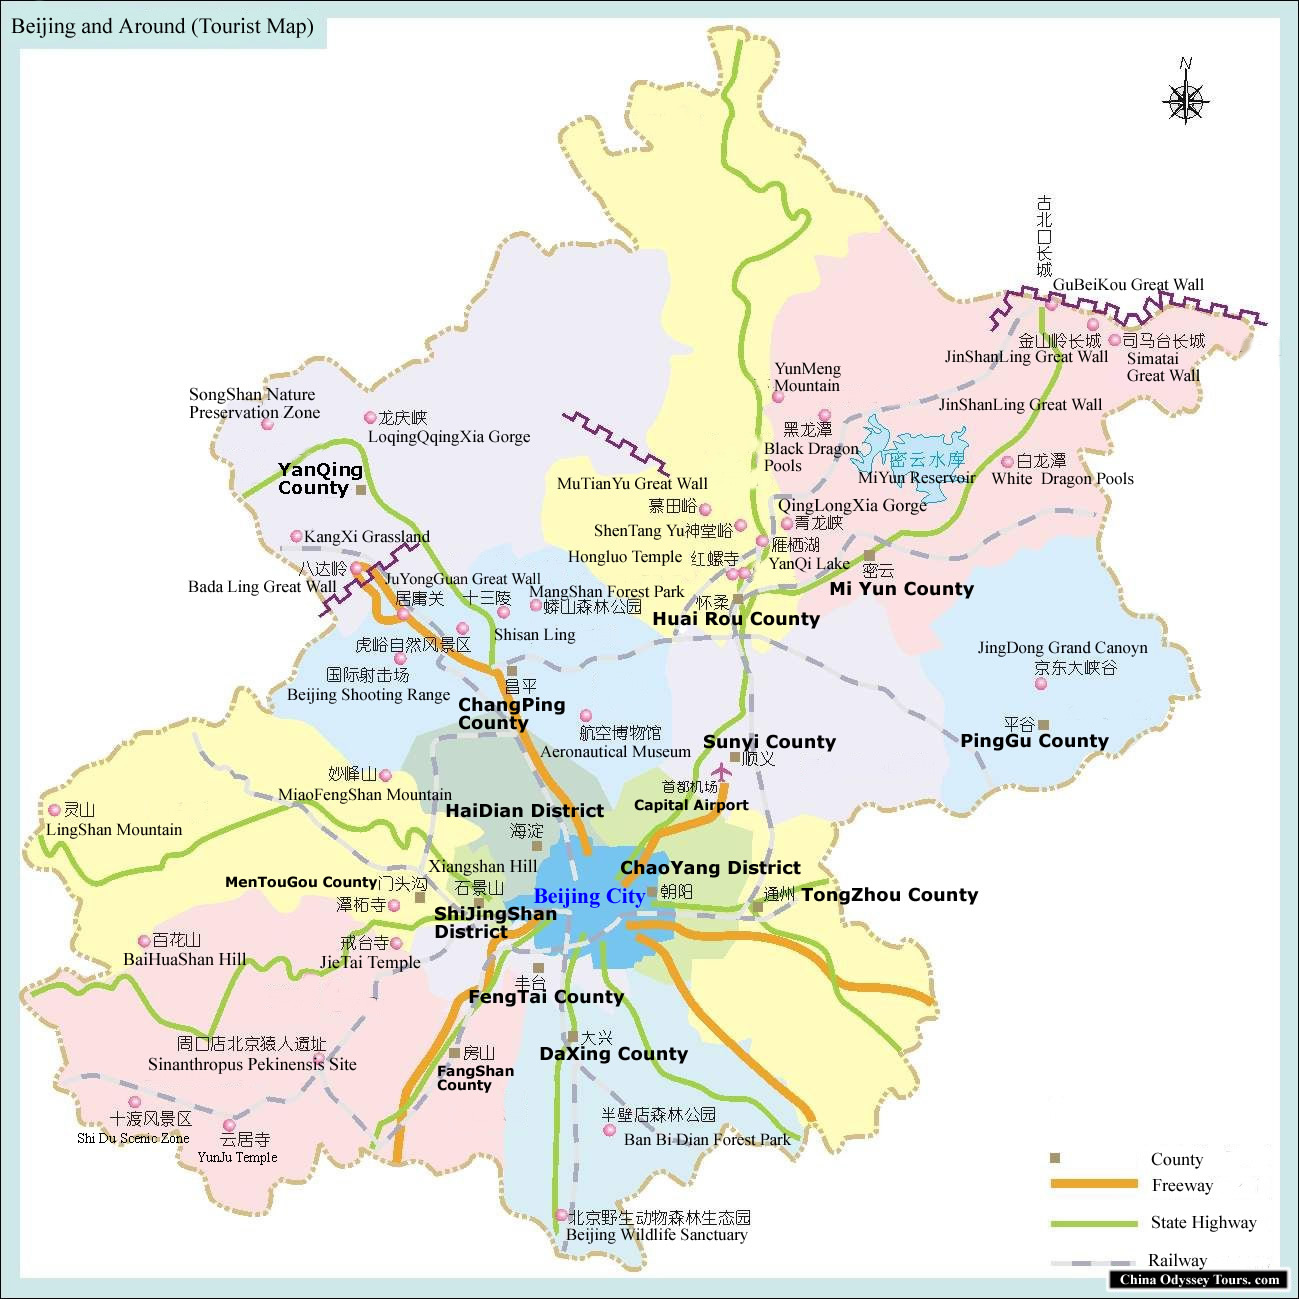 Map Of China And Surrounding Areas.Beijing And Surrounding Area Tourist Map Beijing China Mappery